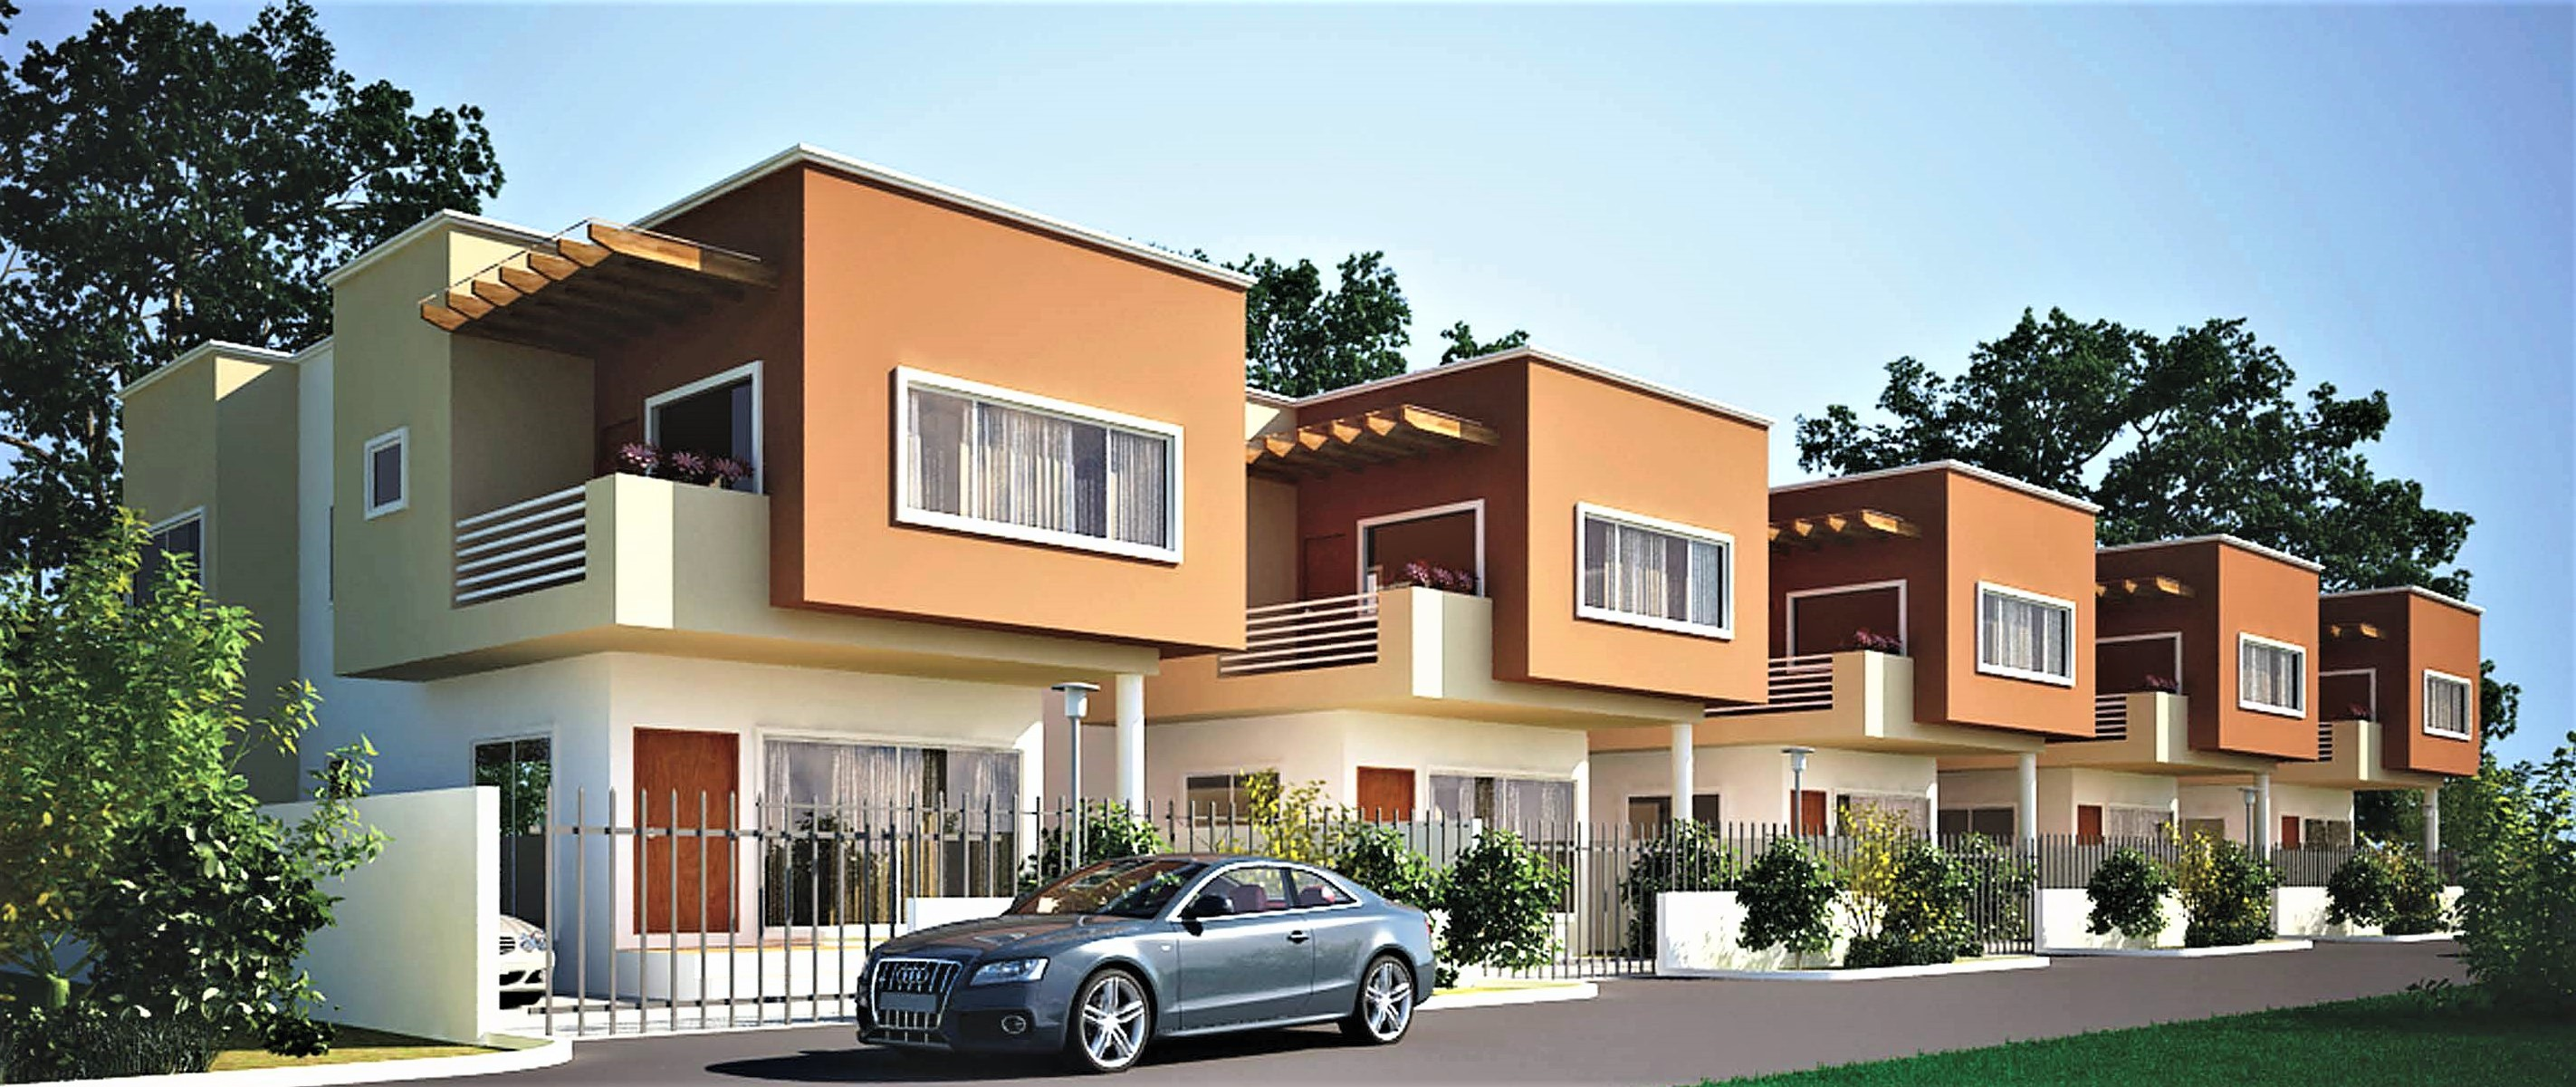 Premier homes 3 bedrooms townhouse abelemkpe for 3 bedroom townhomes